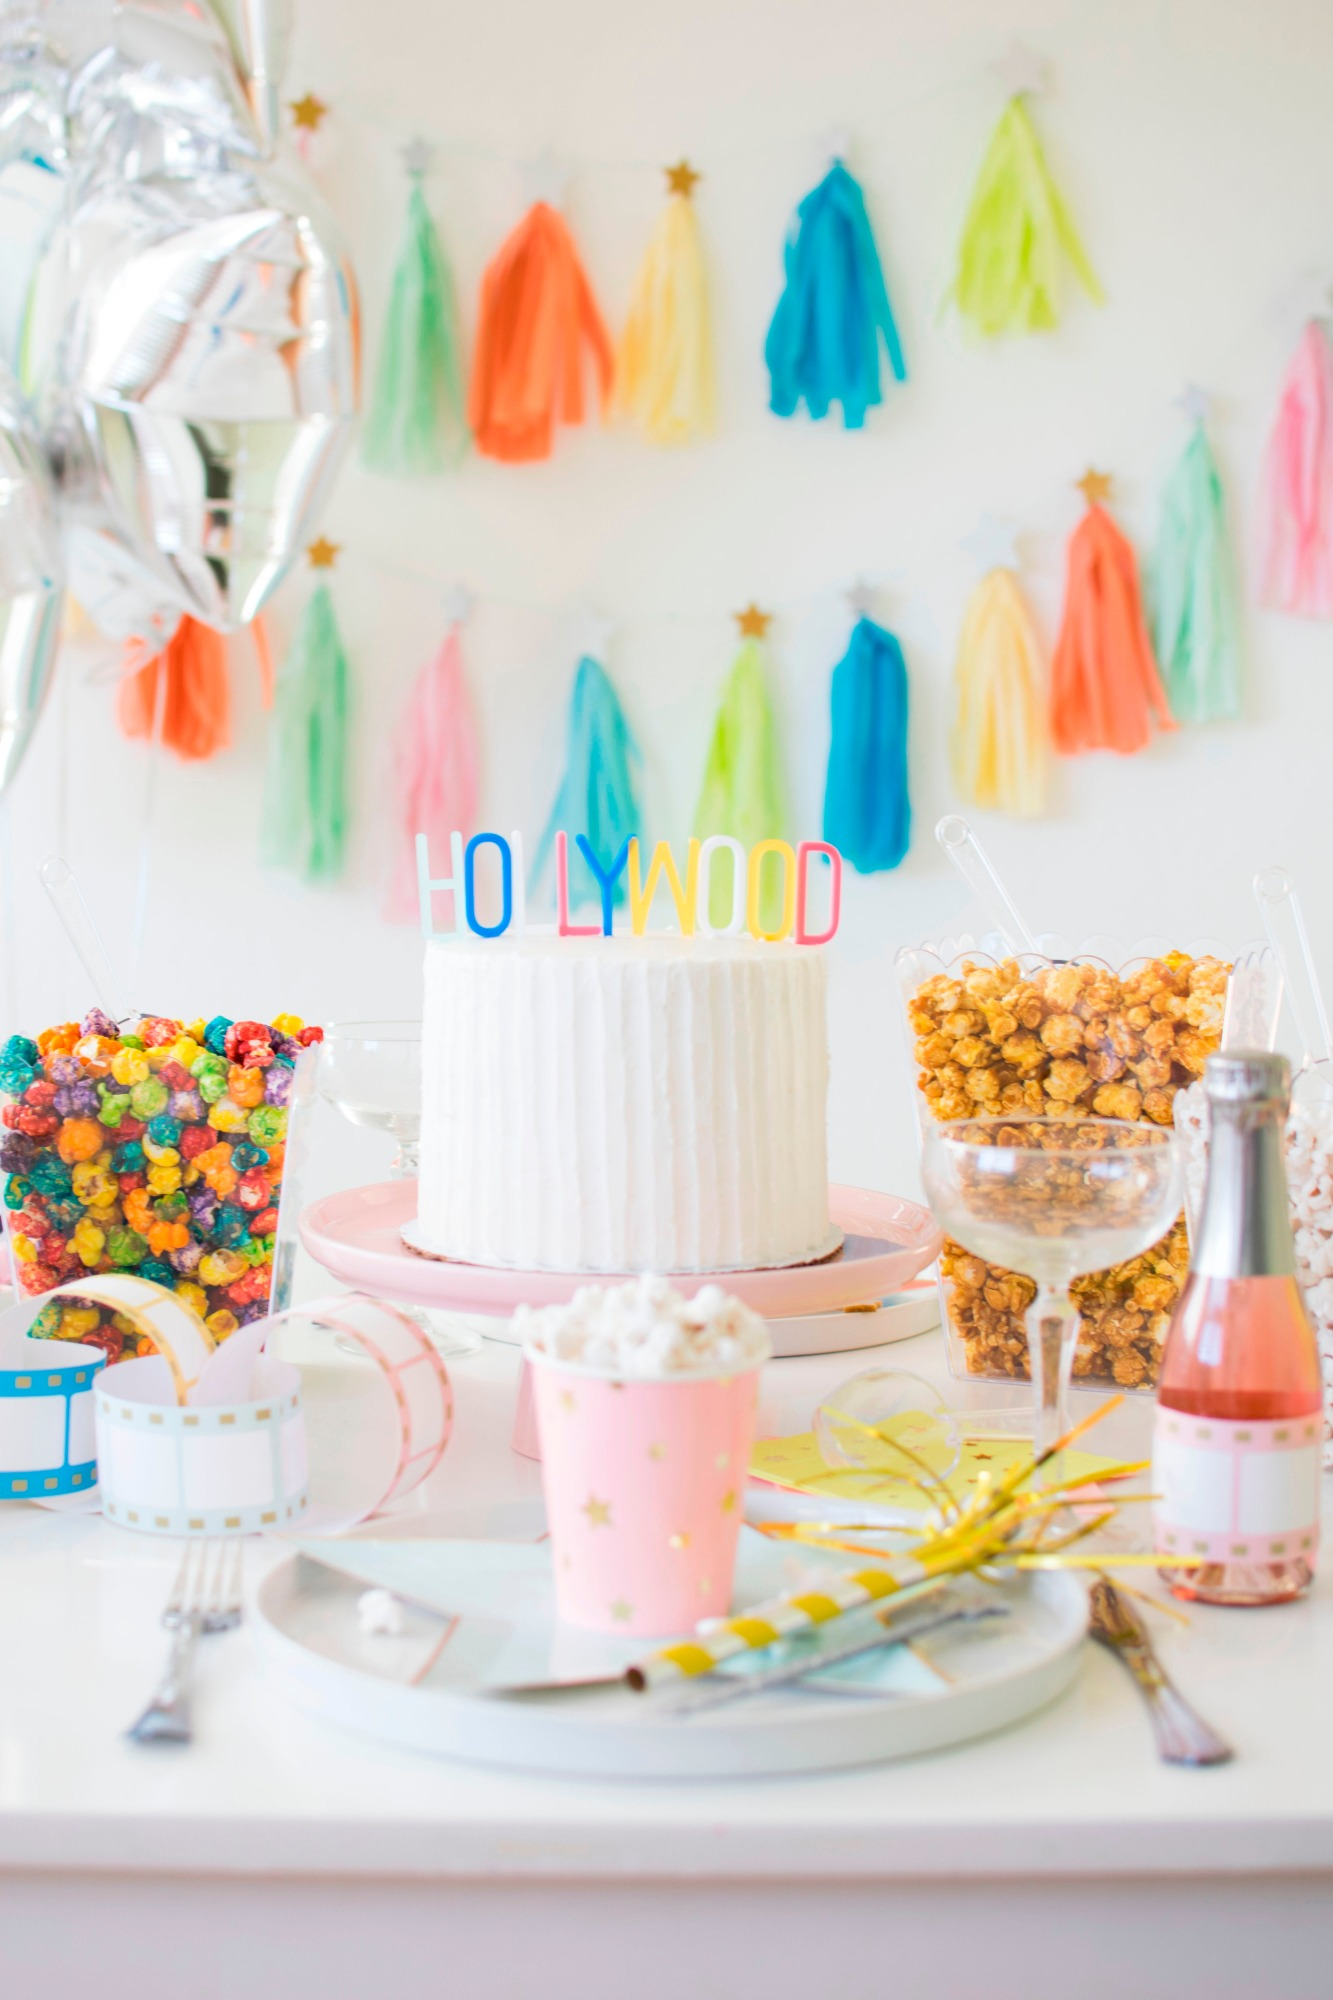 Hollywood Cake | Hollywood Glamour Party Styled by Twinkle Twinkle Little Party | Black Twine